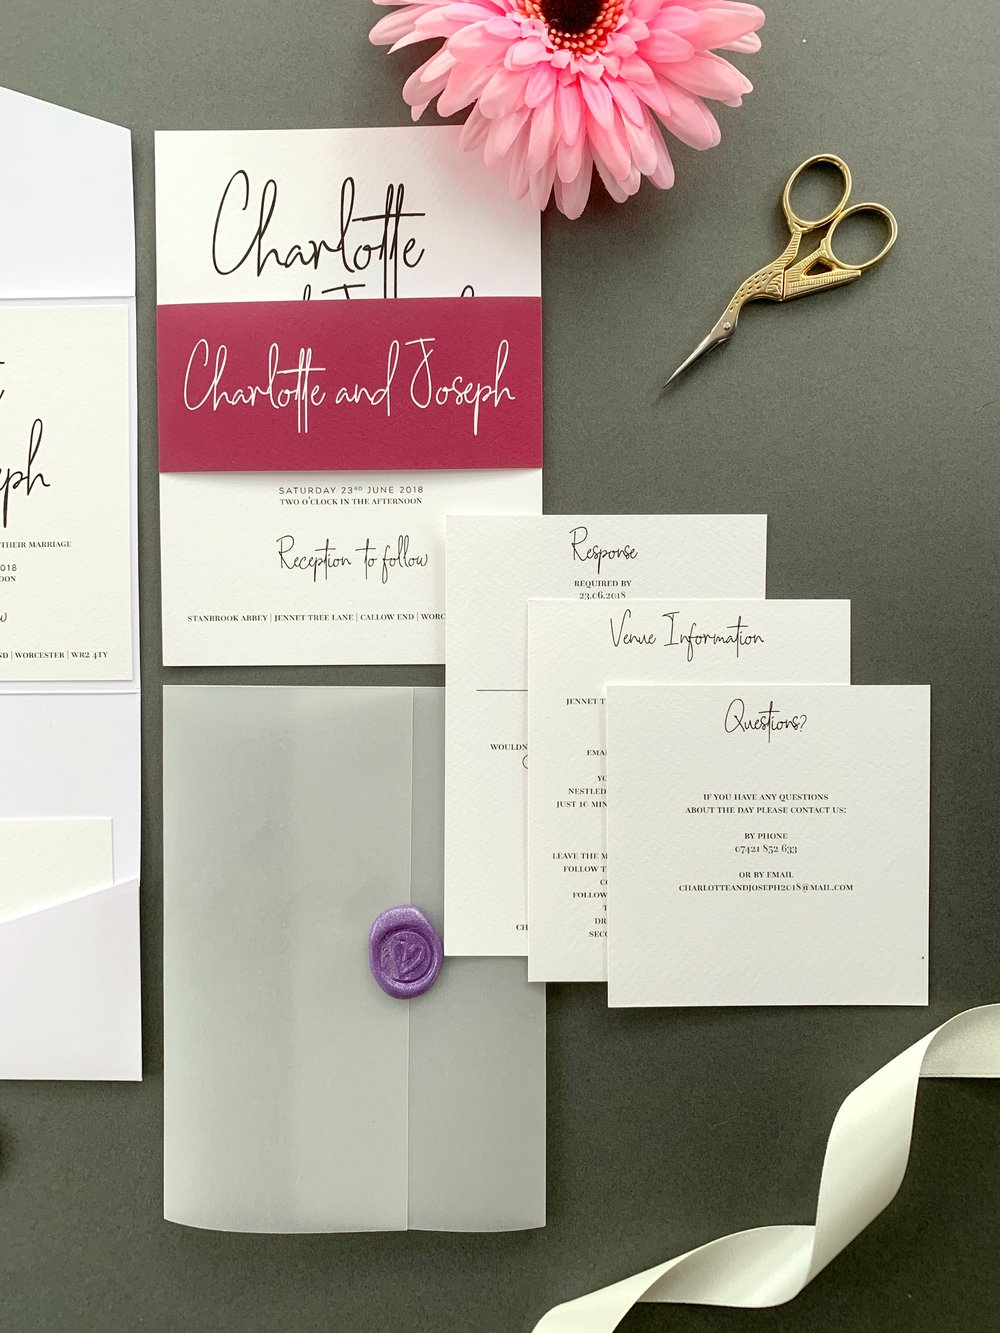 Chancery Lane Invitation Suite in Jet Black and Dark Raspberry for printing, with Pearl Violet Wax Seal on Vellum Jacket